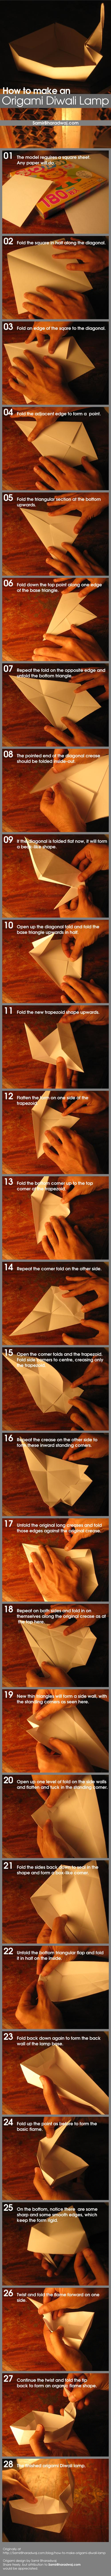 Making an origami Diwali lamp